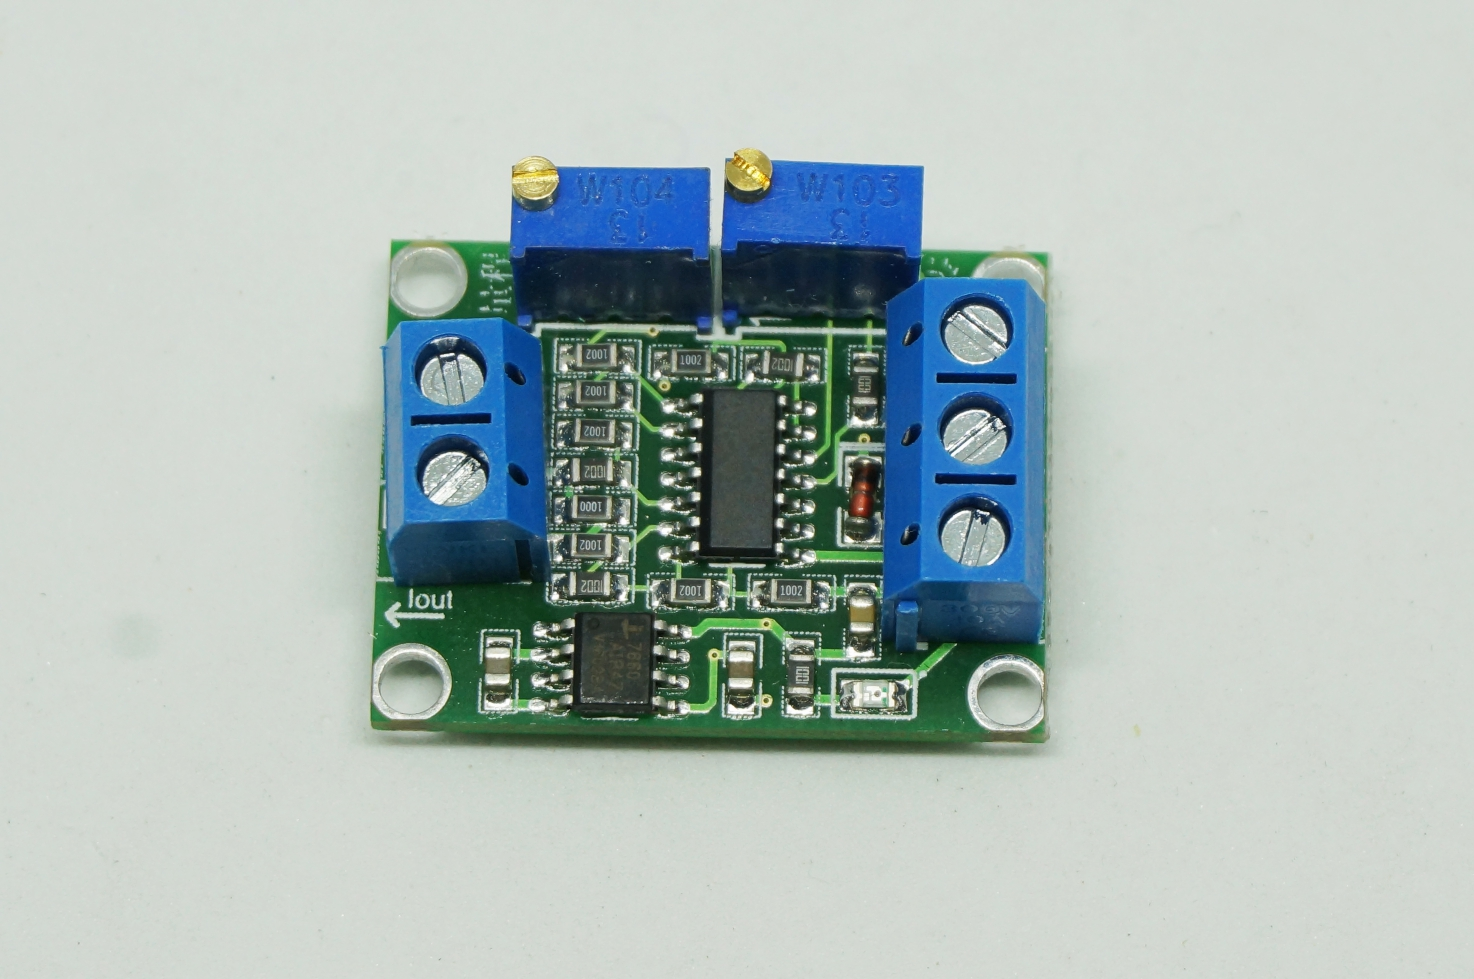 4-20mA to 0-5V Current to Voltage Converter